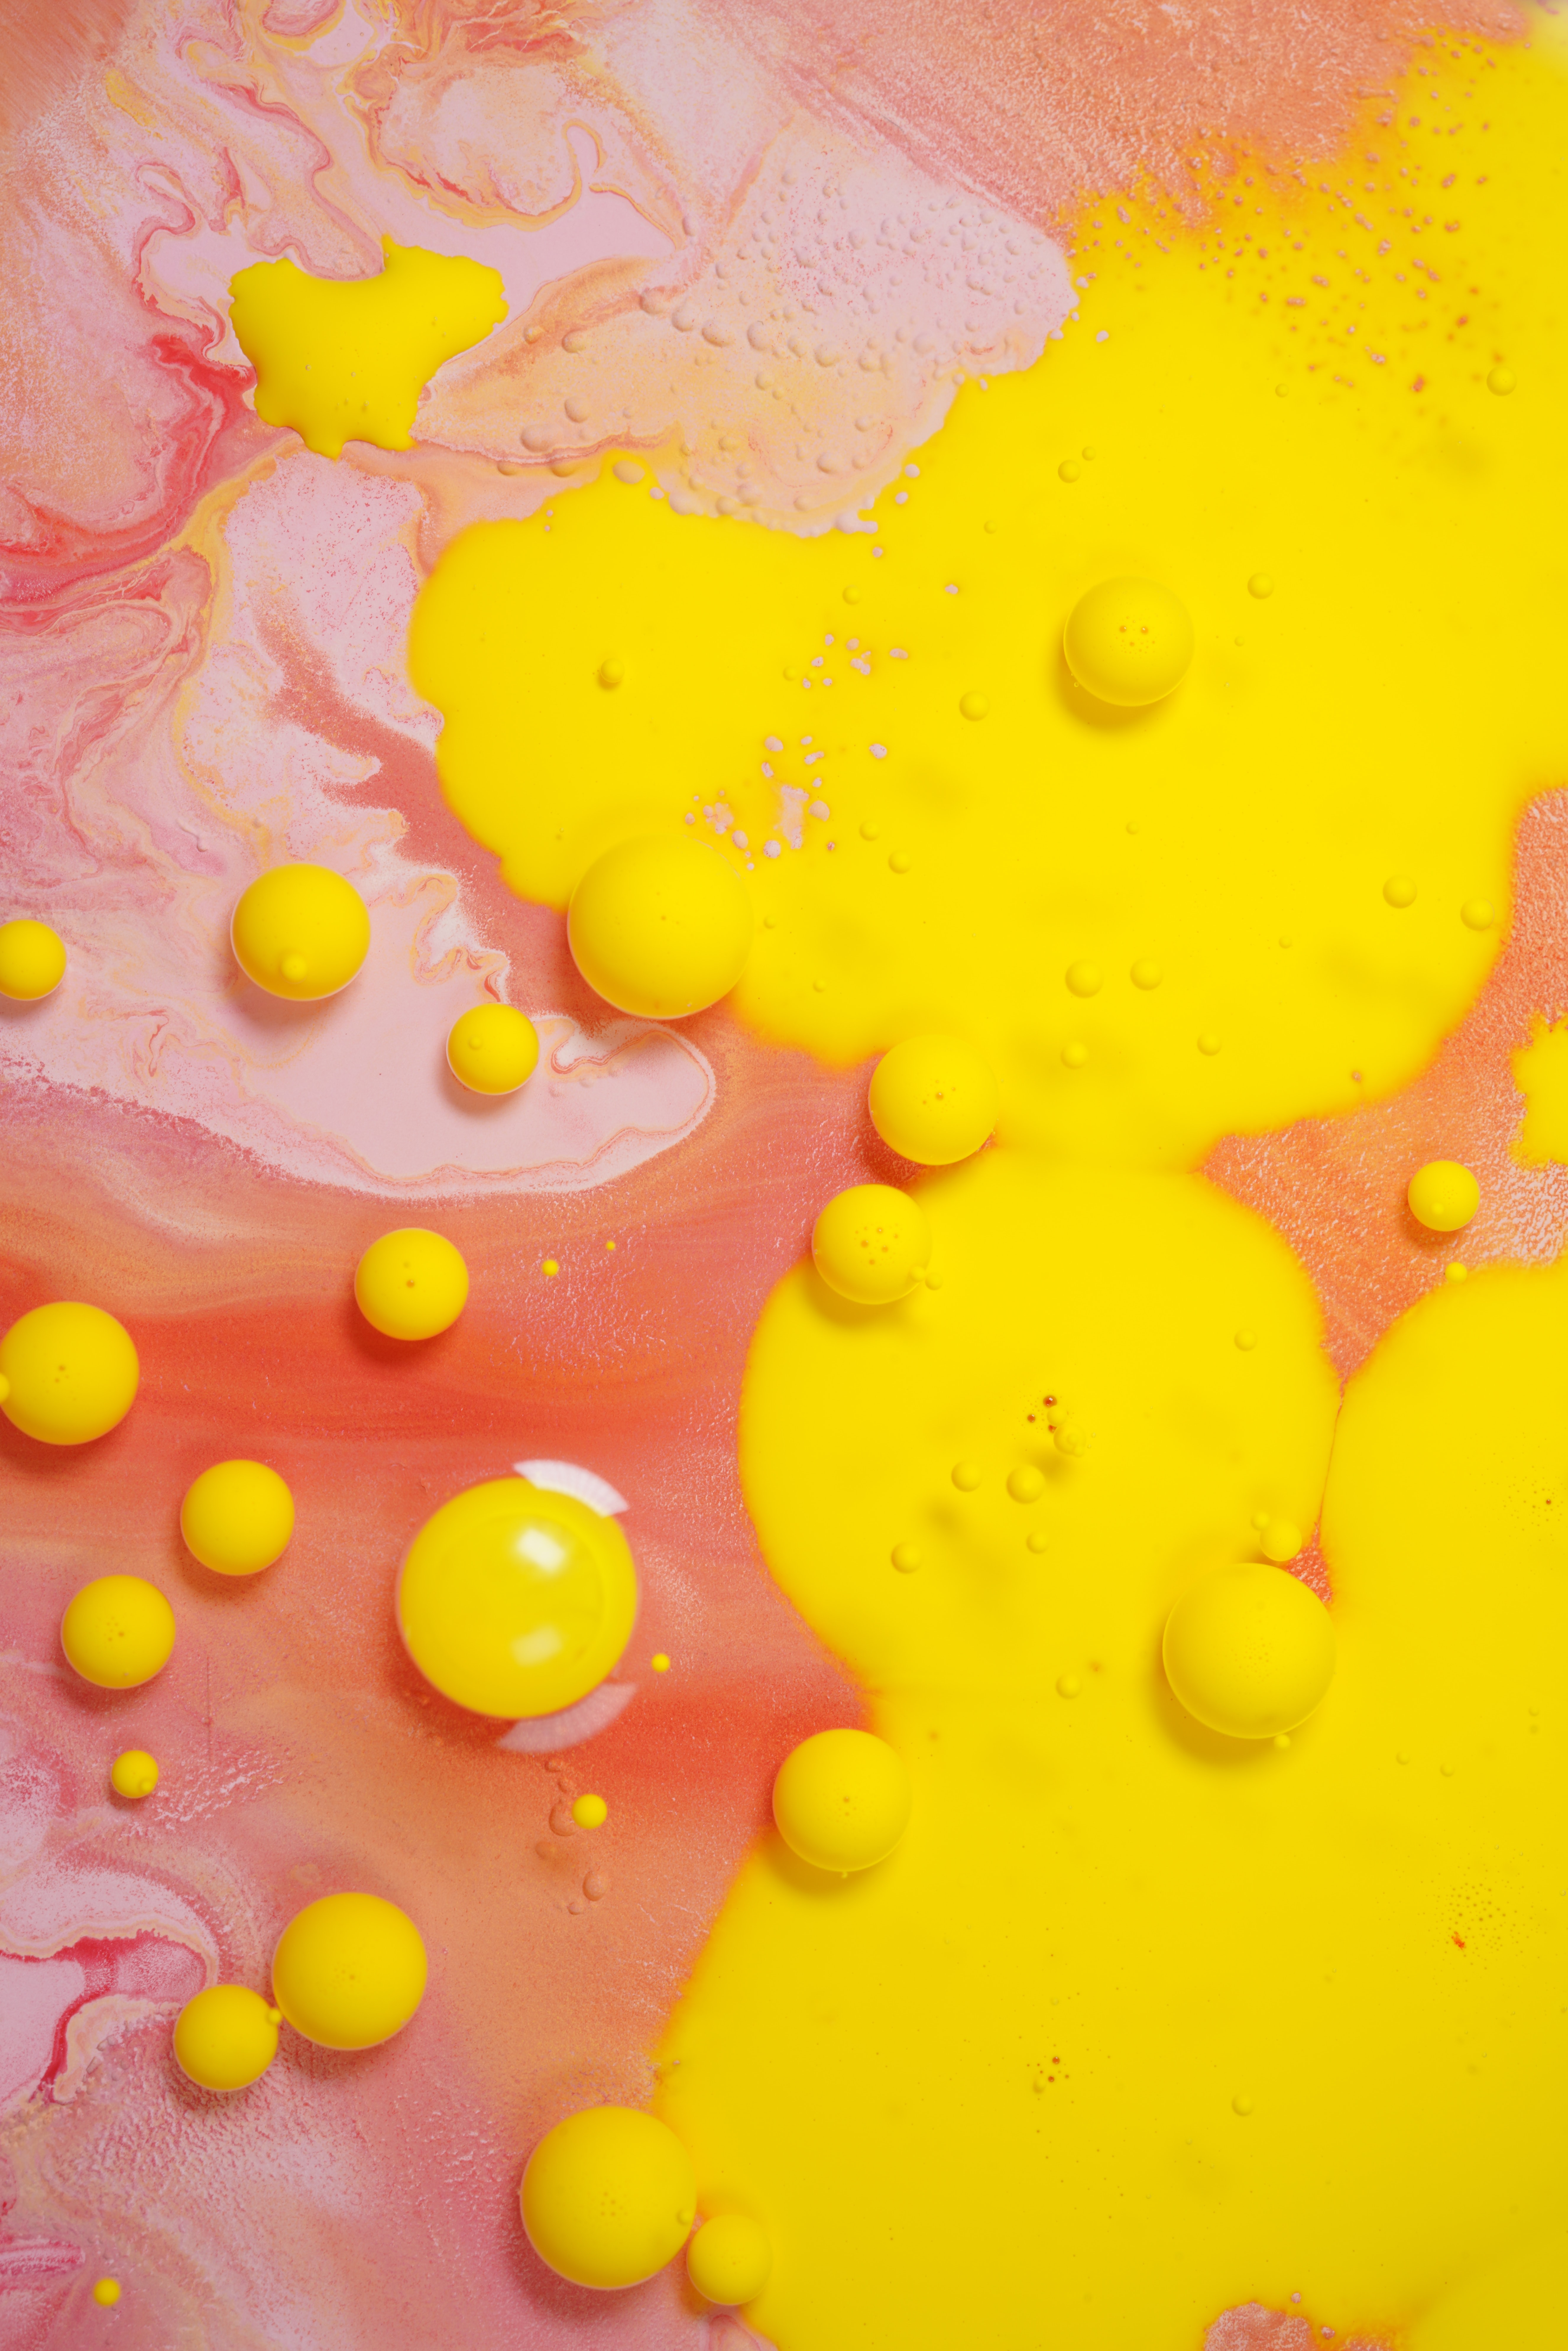 97400 download wallpaper Abstract, Paint, Divorces, Liquid, Bubbles screensavers and pictures for free